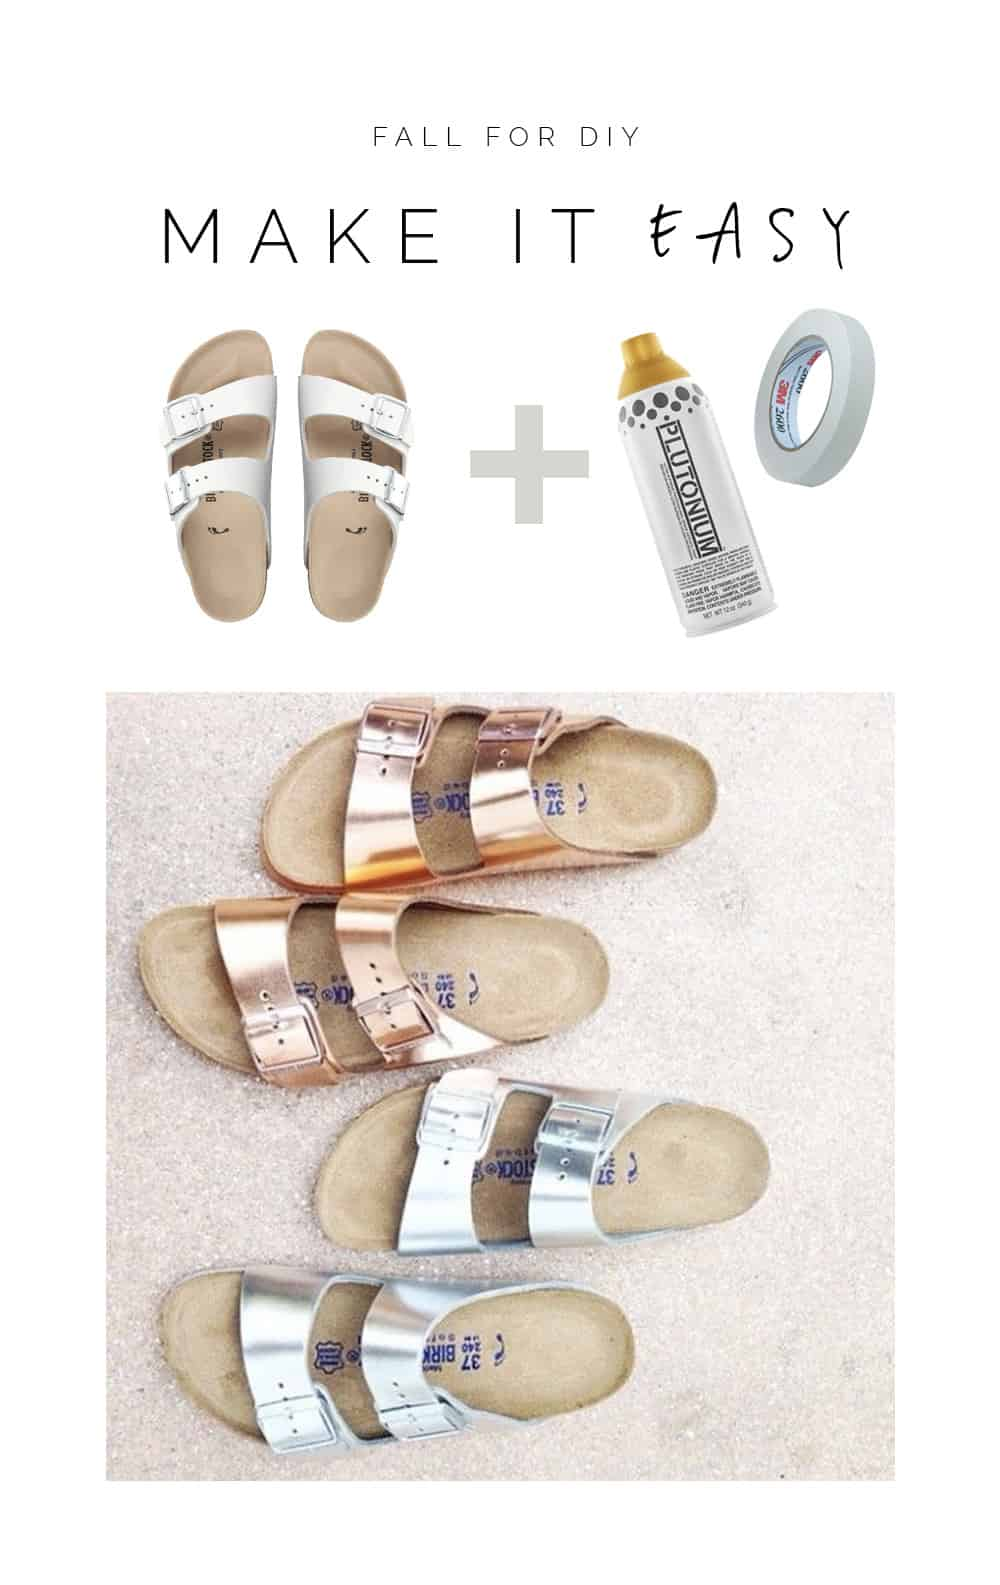 Metallic birkenstocks